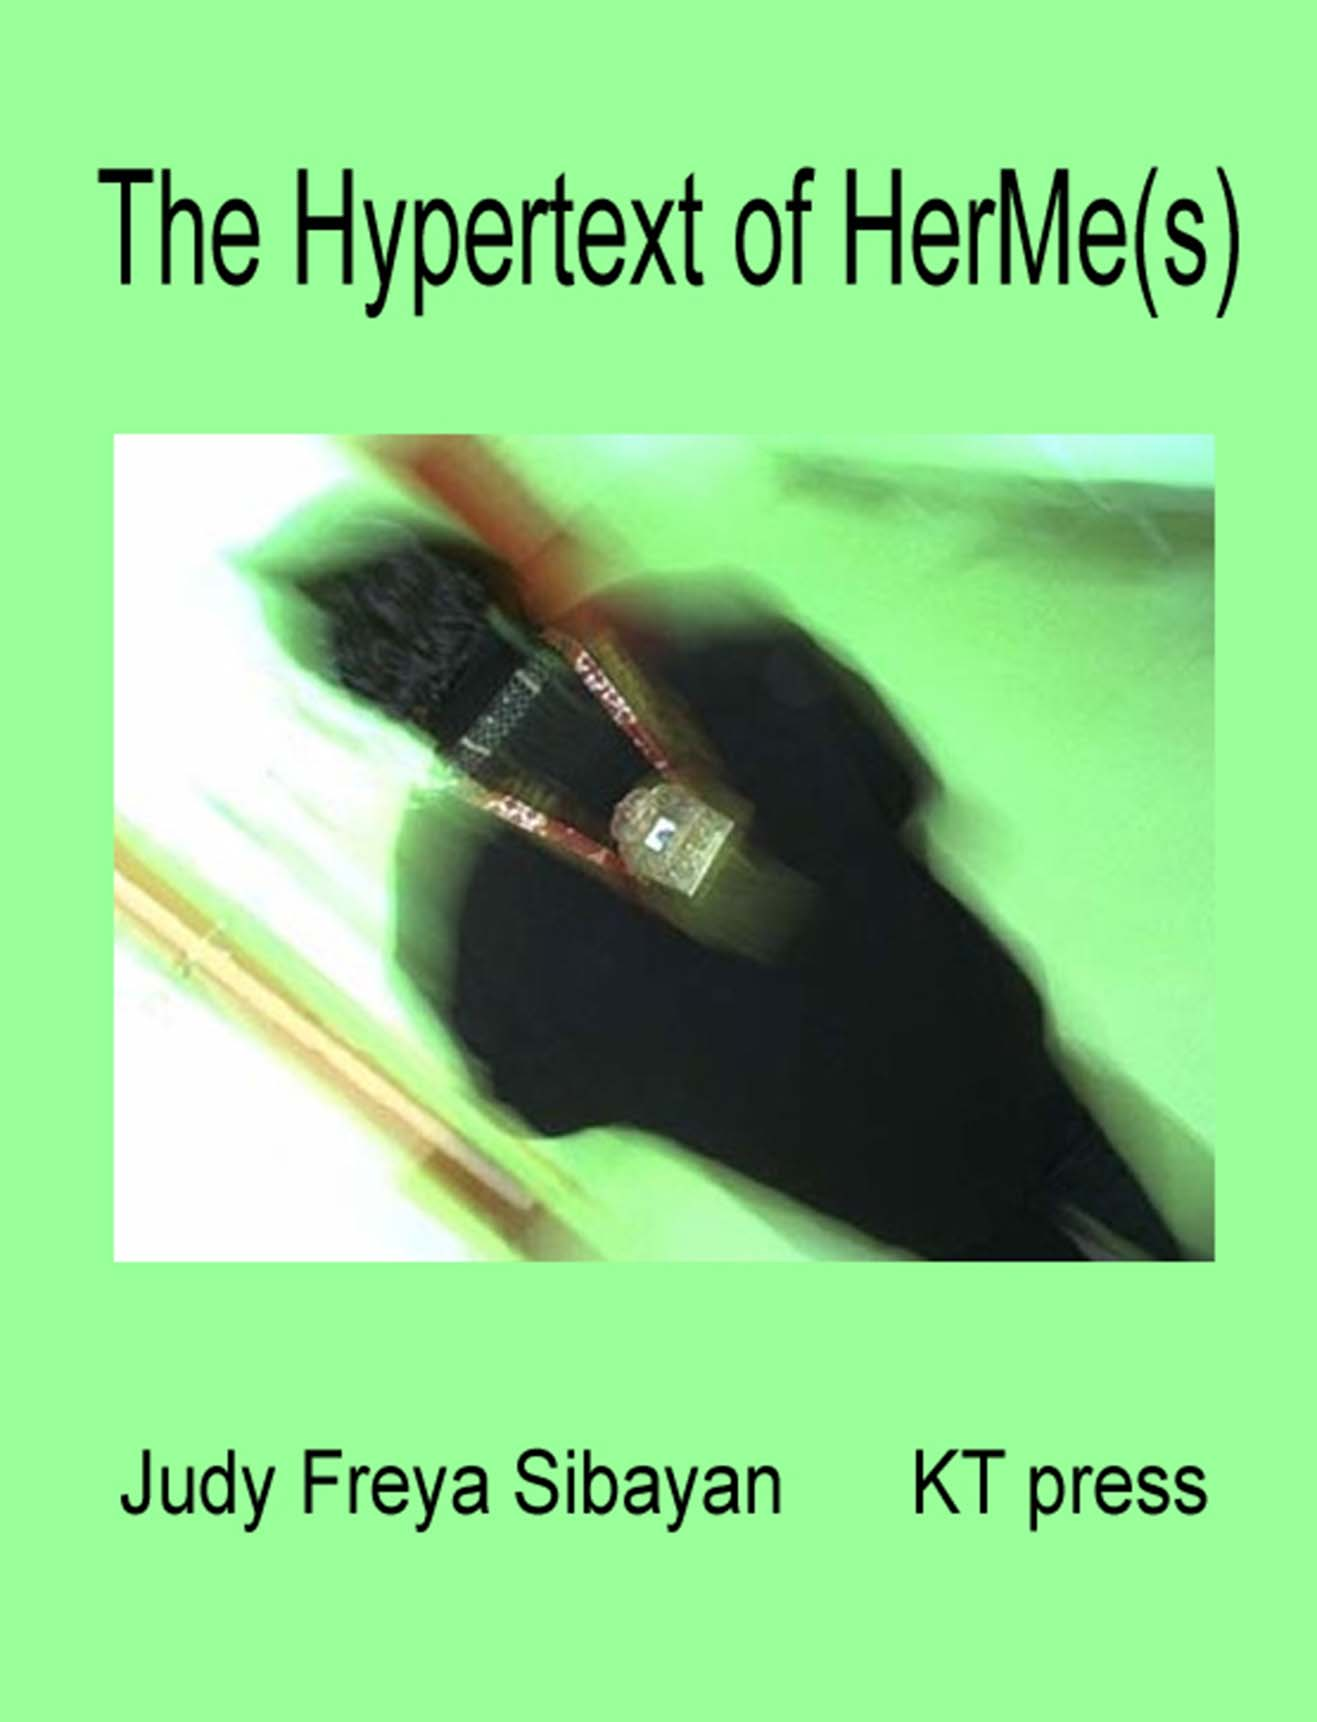 The Hypertext of HerMe(s), Judy Freya Sibayan, book cover. Photo © Armin Linke.